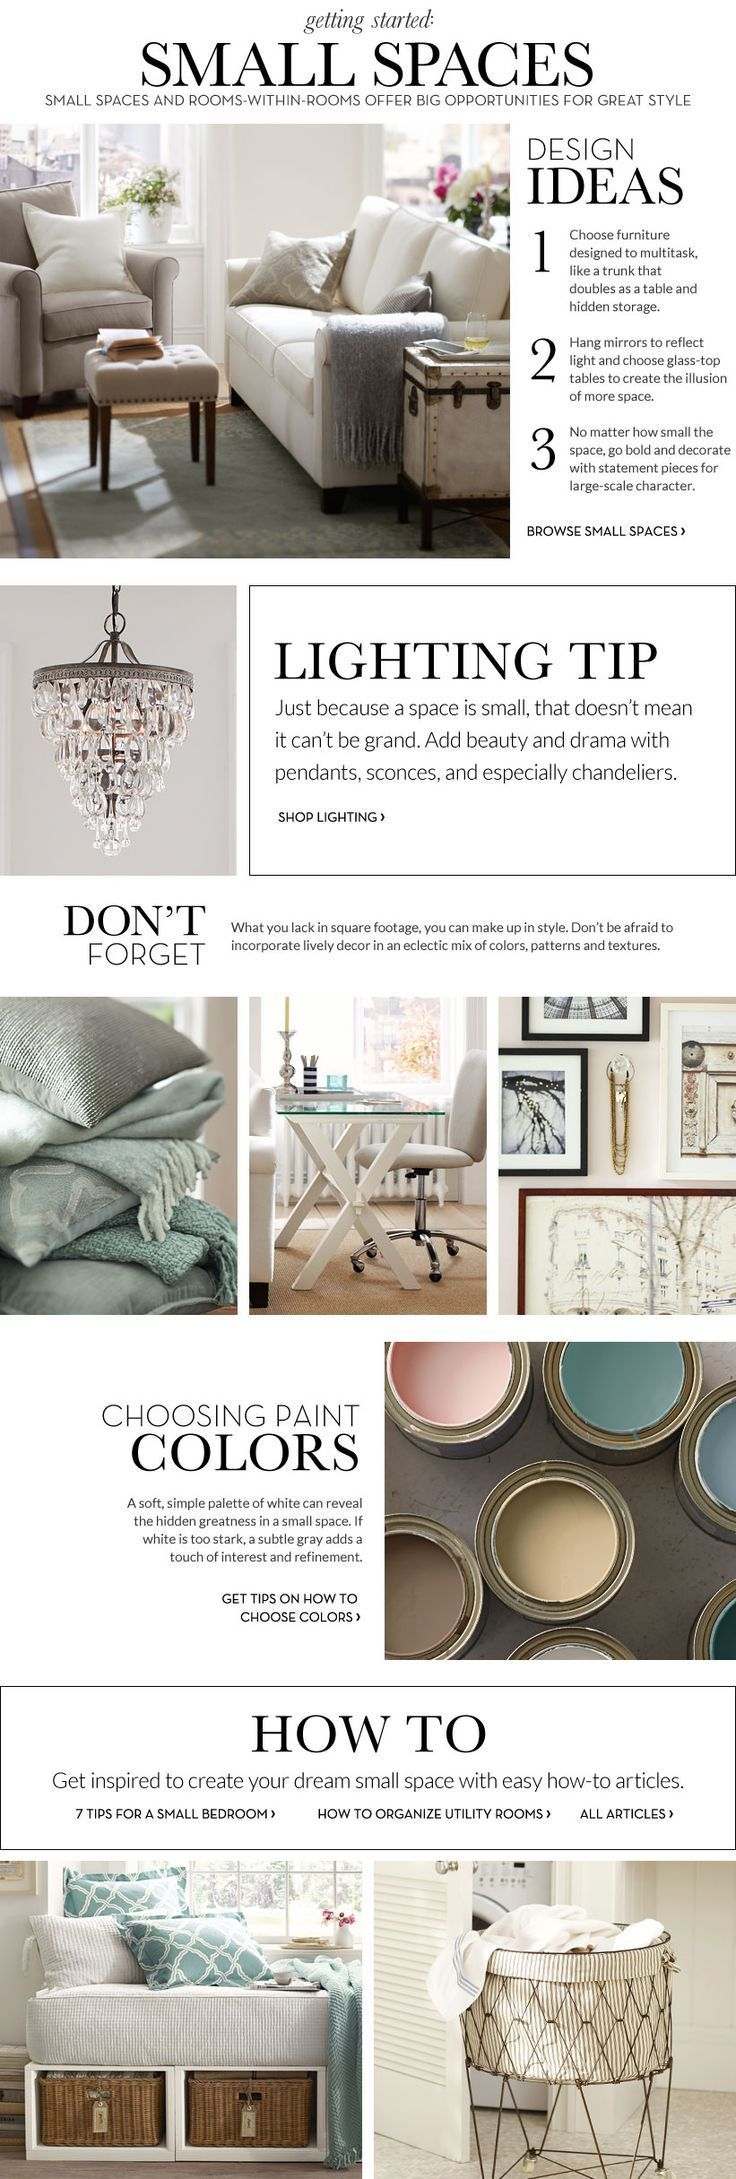 Small Spaces Inspiration & How to Decorate Small Spaces | Pottery Barn #smallroomdesignhowtodecorate